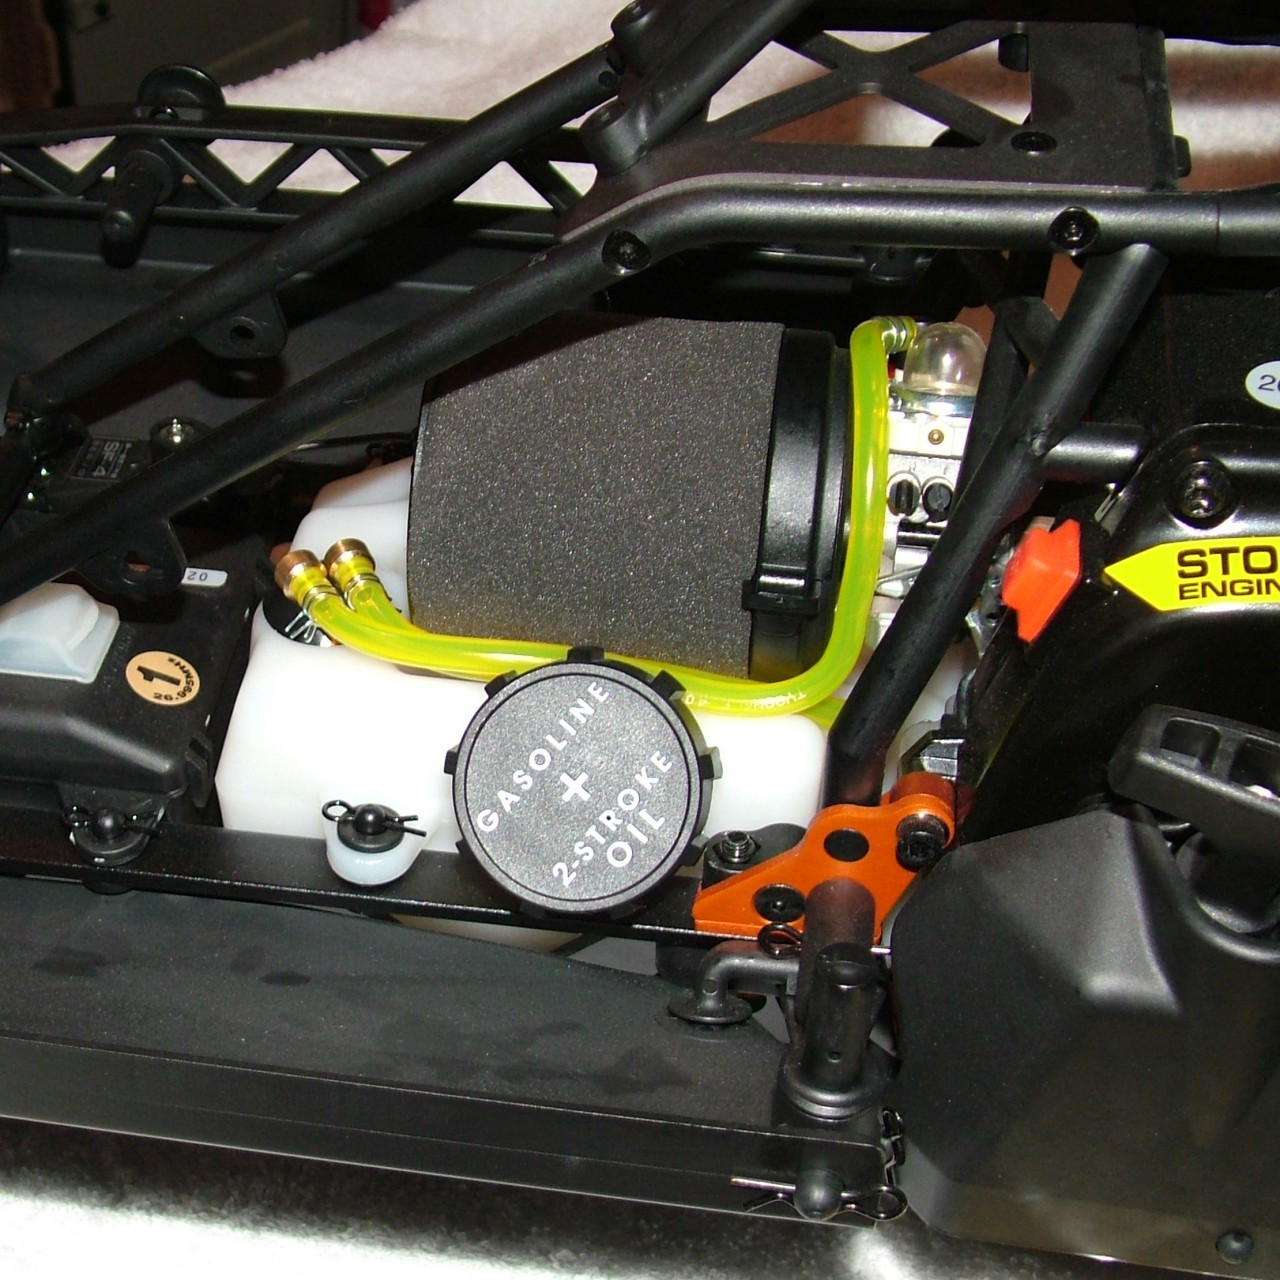 Shown here mounted on an HPI Baja 5T truck.